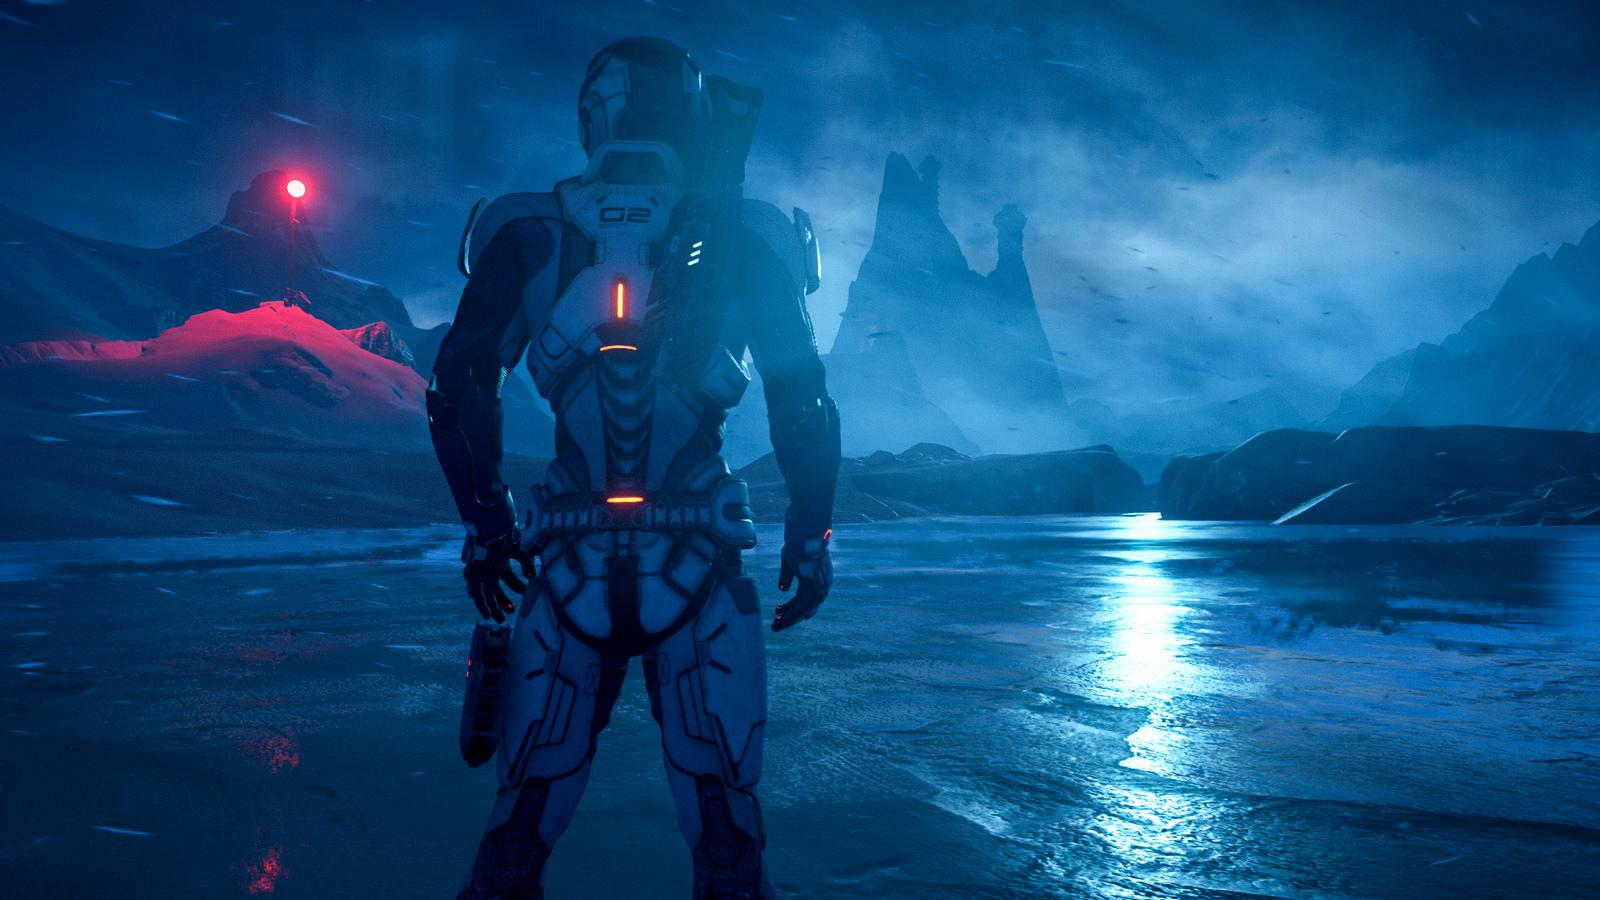 Buy Mass Effect Andromeda Deluxe Edition XBOX ONE CD Key from $82.93 - Cheapest Price - CDKeyZ.com